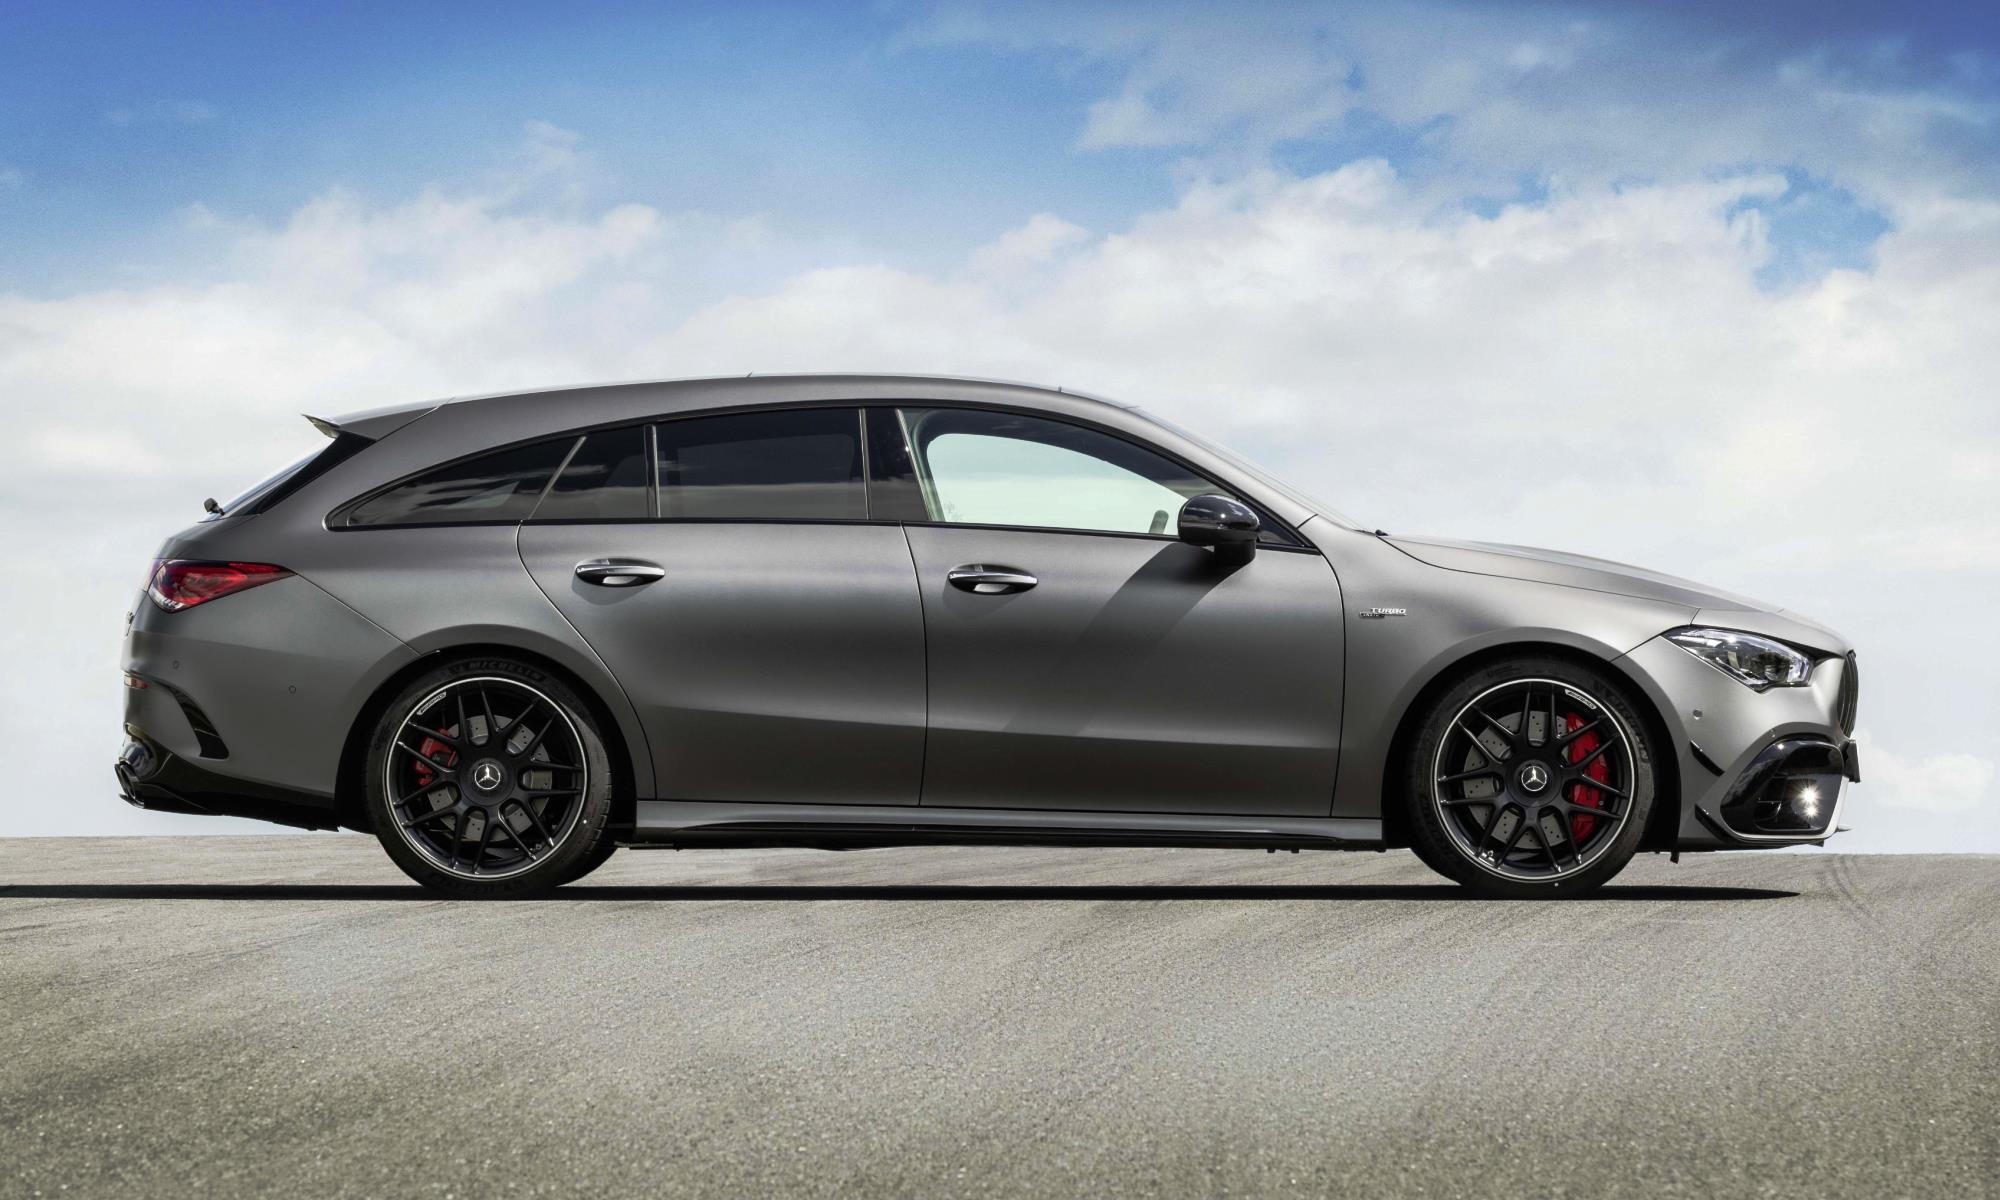 Mercedes-AMG CLA45 Shooting Brake profile